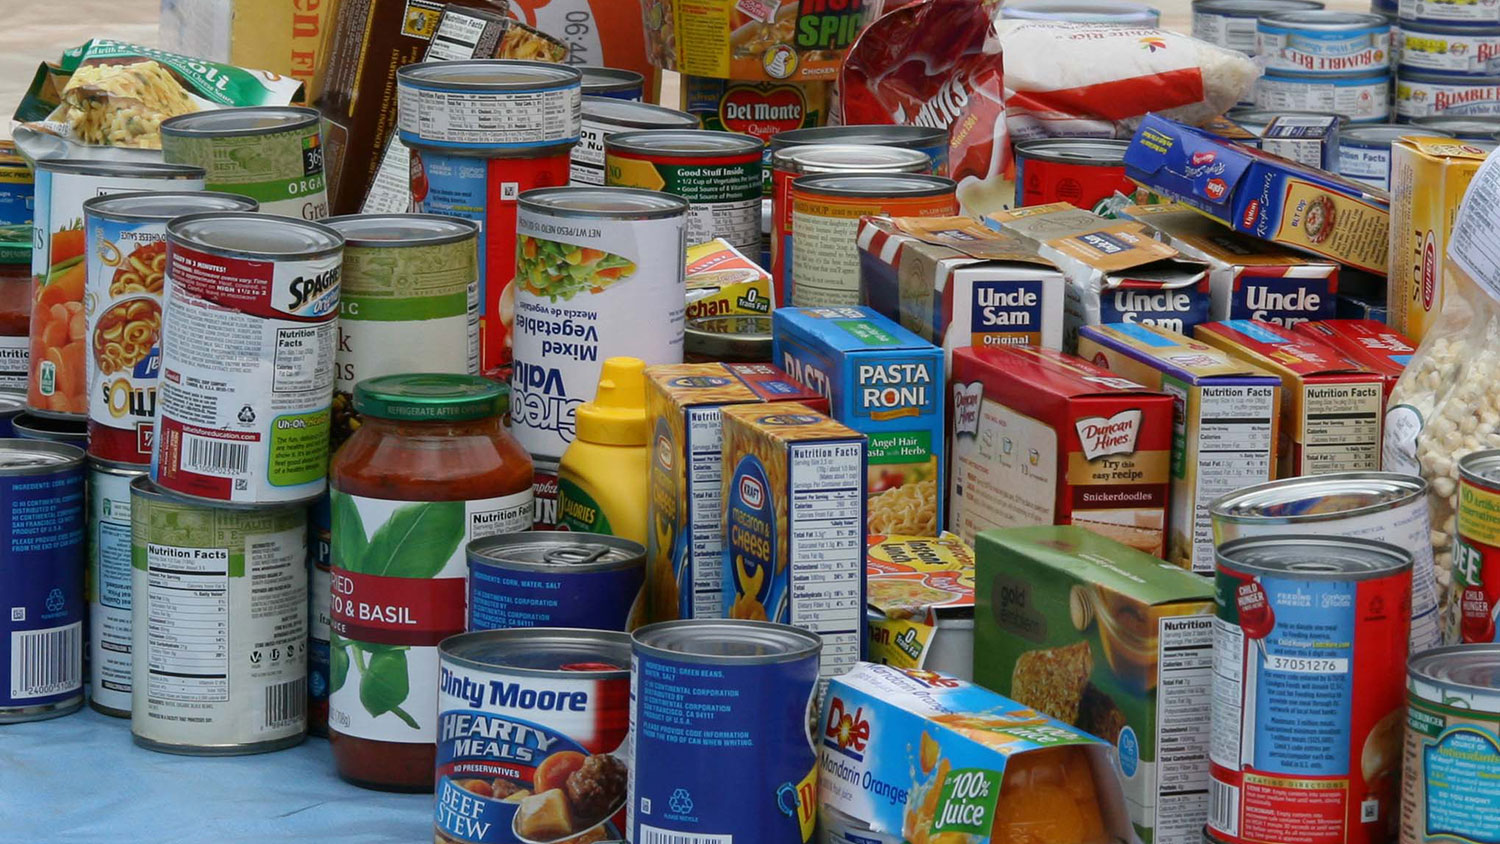 Food pantry items